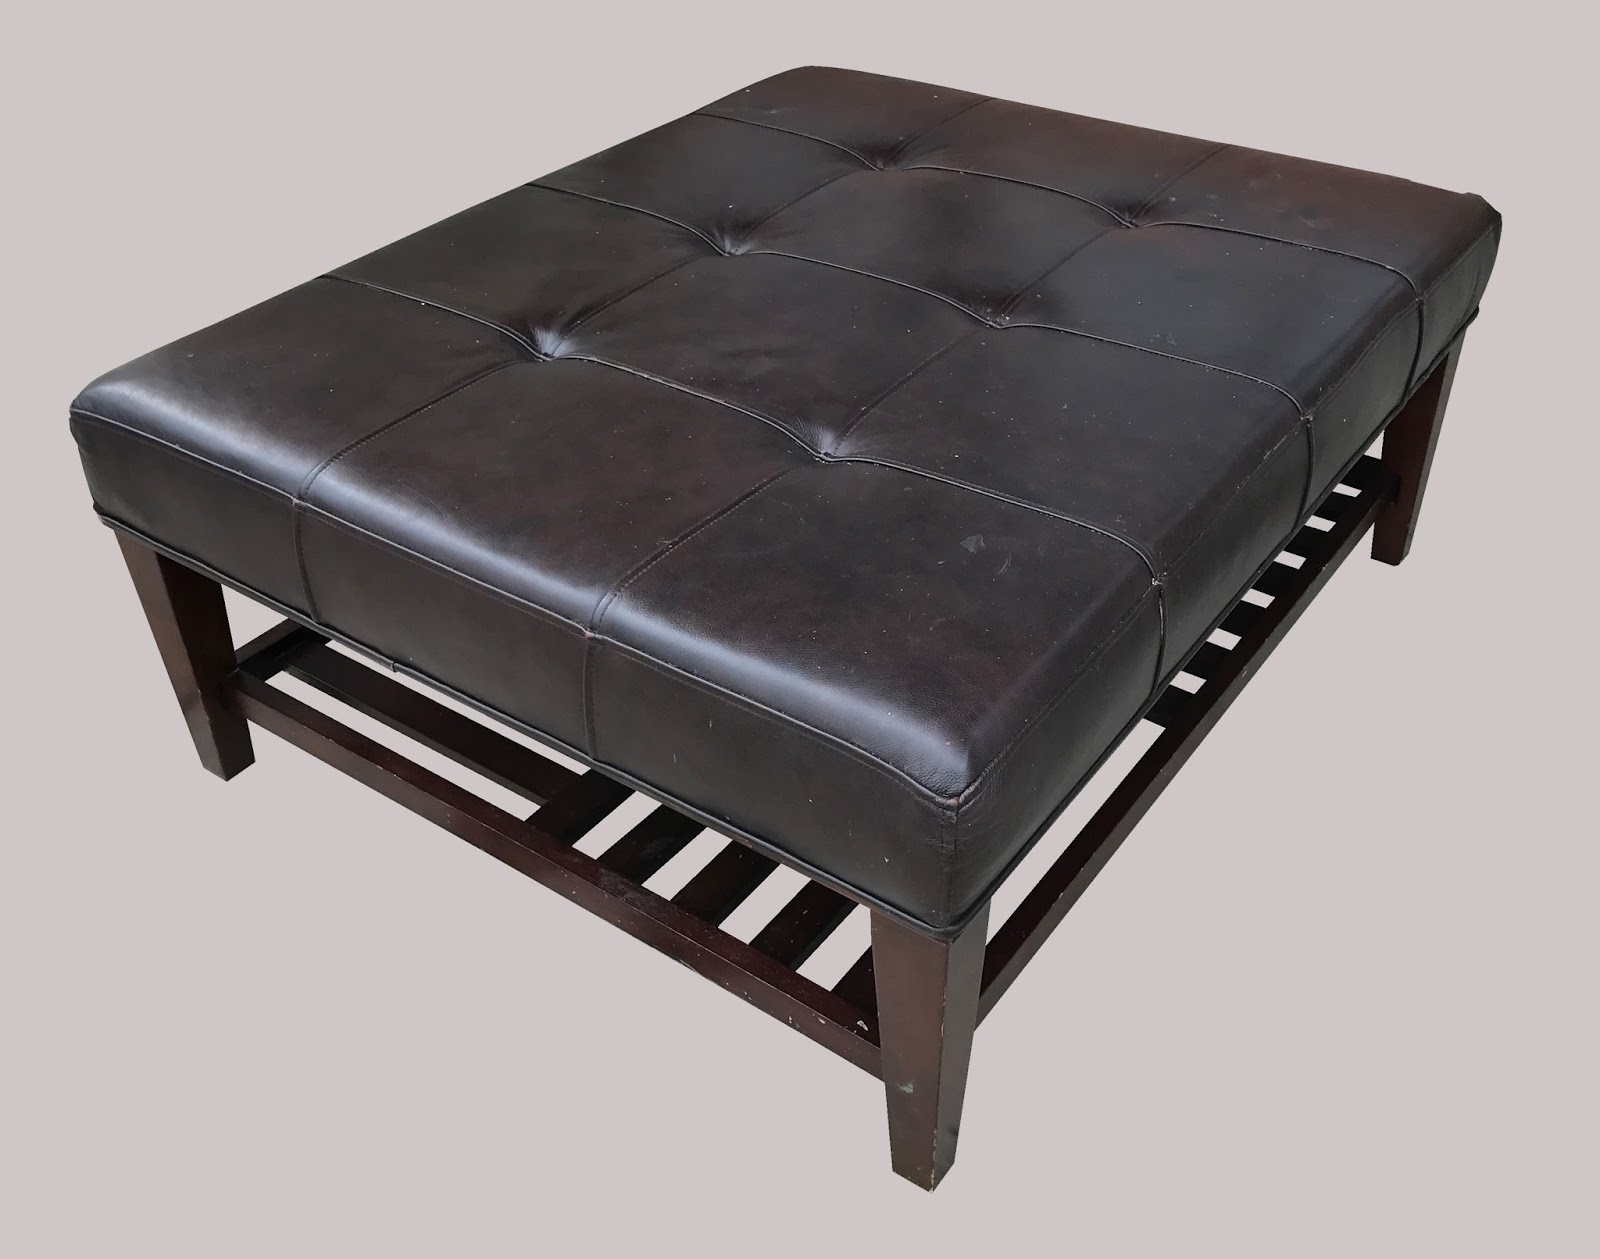 uhuru furniture collectibles large leather ottoman with. Black Bedroom Furniture Sets. Home Design Ideas